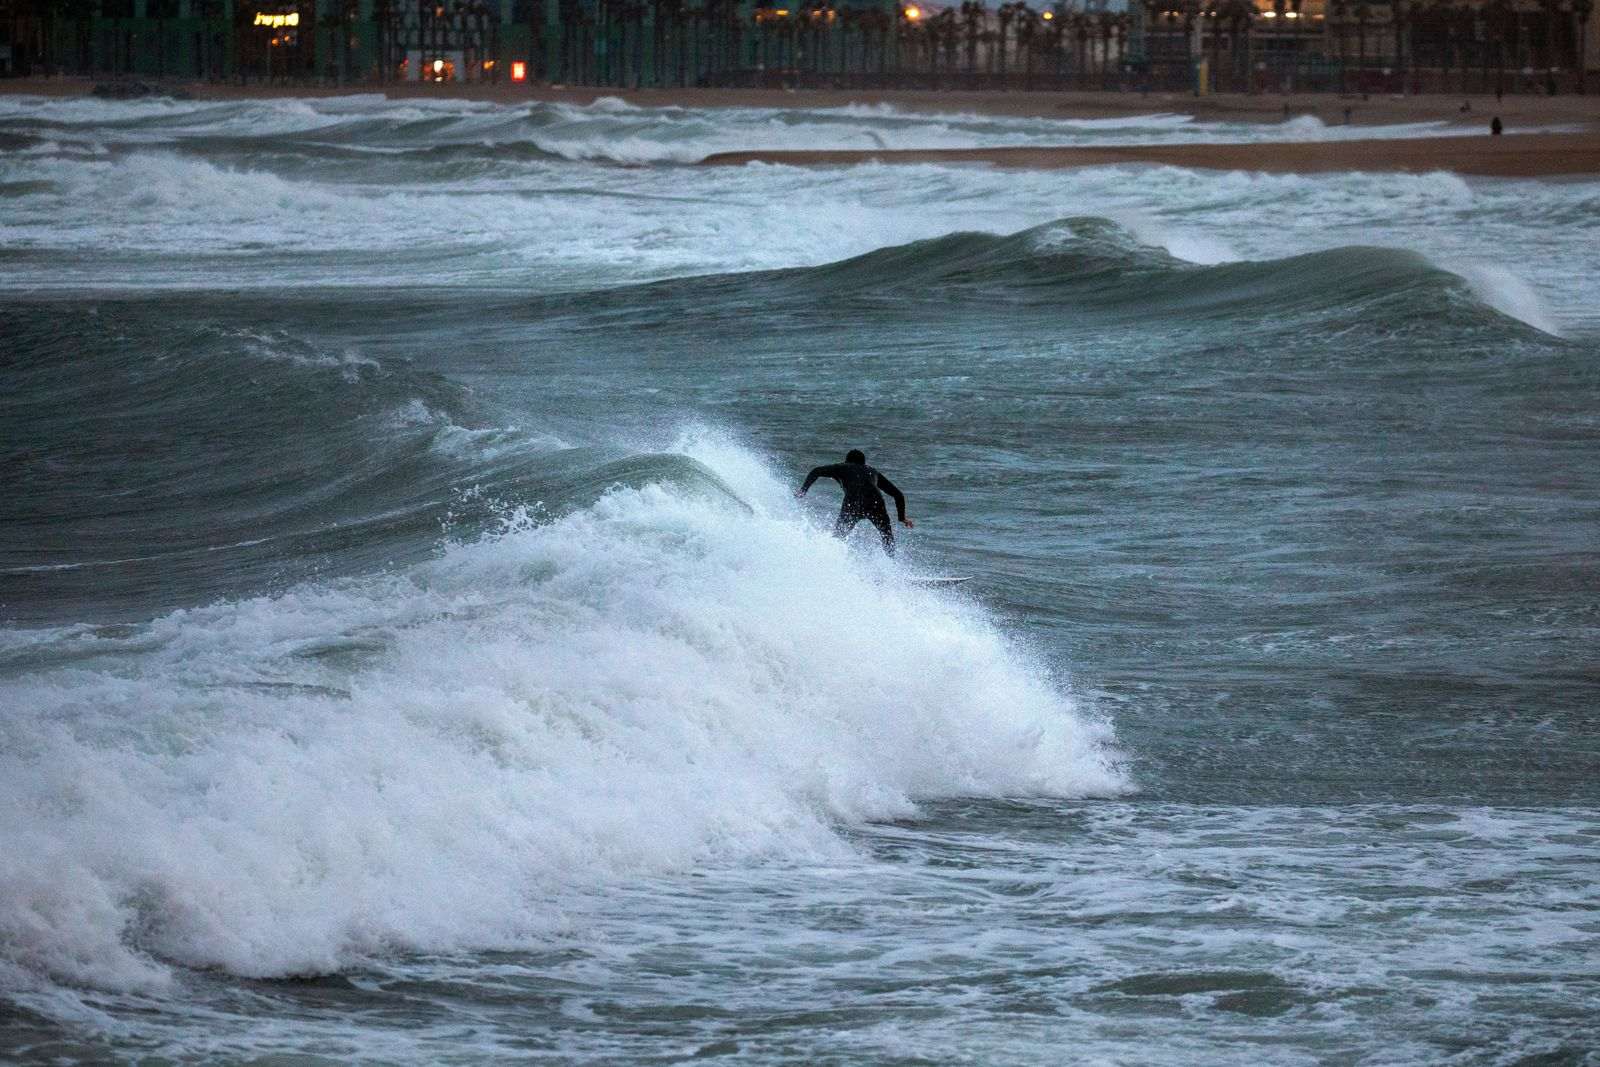 A man surfs the Mediterranean sea during strong winds in Barcelona, Spain, Sunday, Jan. 19, 2020. (AP Photo/Emilio Morenatti)